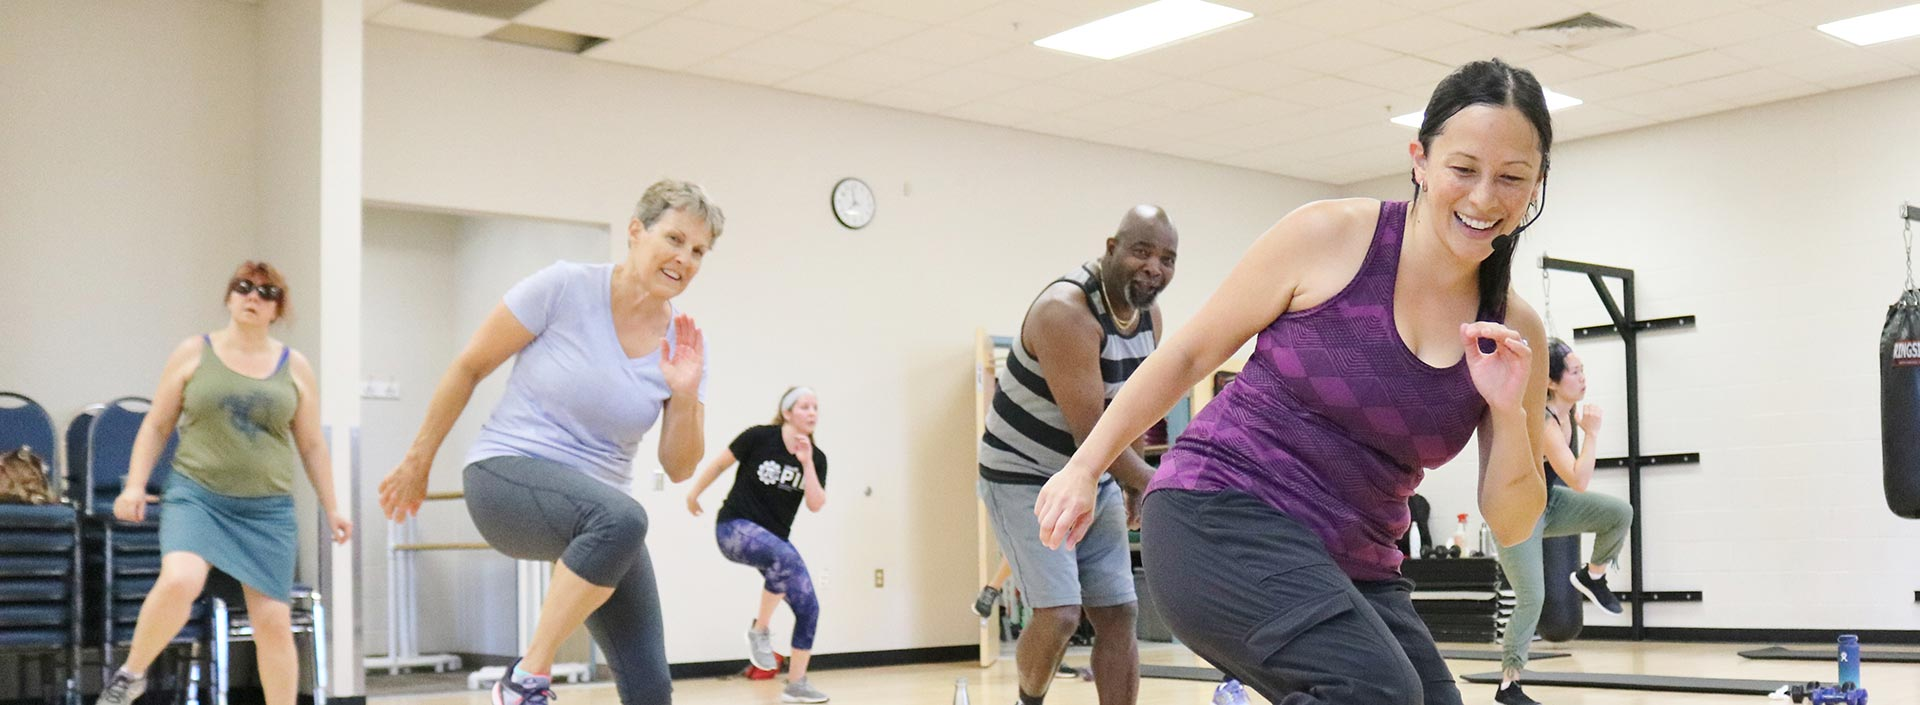 Fitness challenge participants smile during an aerobics class